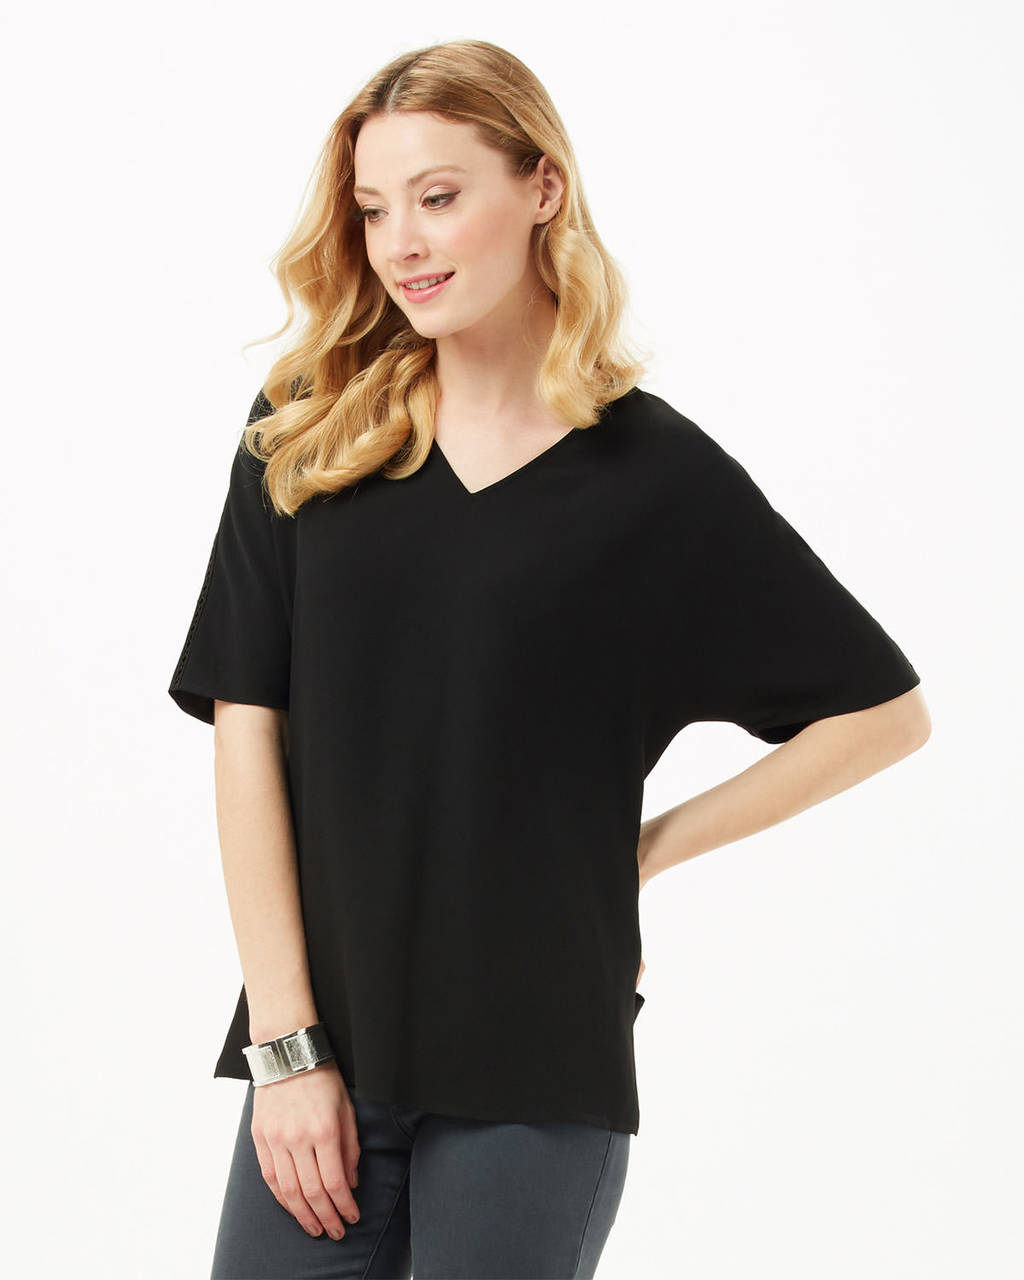 Sylvia V Neck Blouse - neckline: v-neck; sleeve style: dolman/batwing; pattern: plain; style: t-shirt; predominant colour: black; occasions: casual, creative work; length: standard; fibres: polyester/polyamide - 100%; fit: loose; sleeve length: half sleeve; texture group: crepes; pattern type: fabric; season: s/s 2016; wardrobe: basic